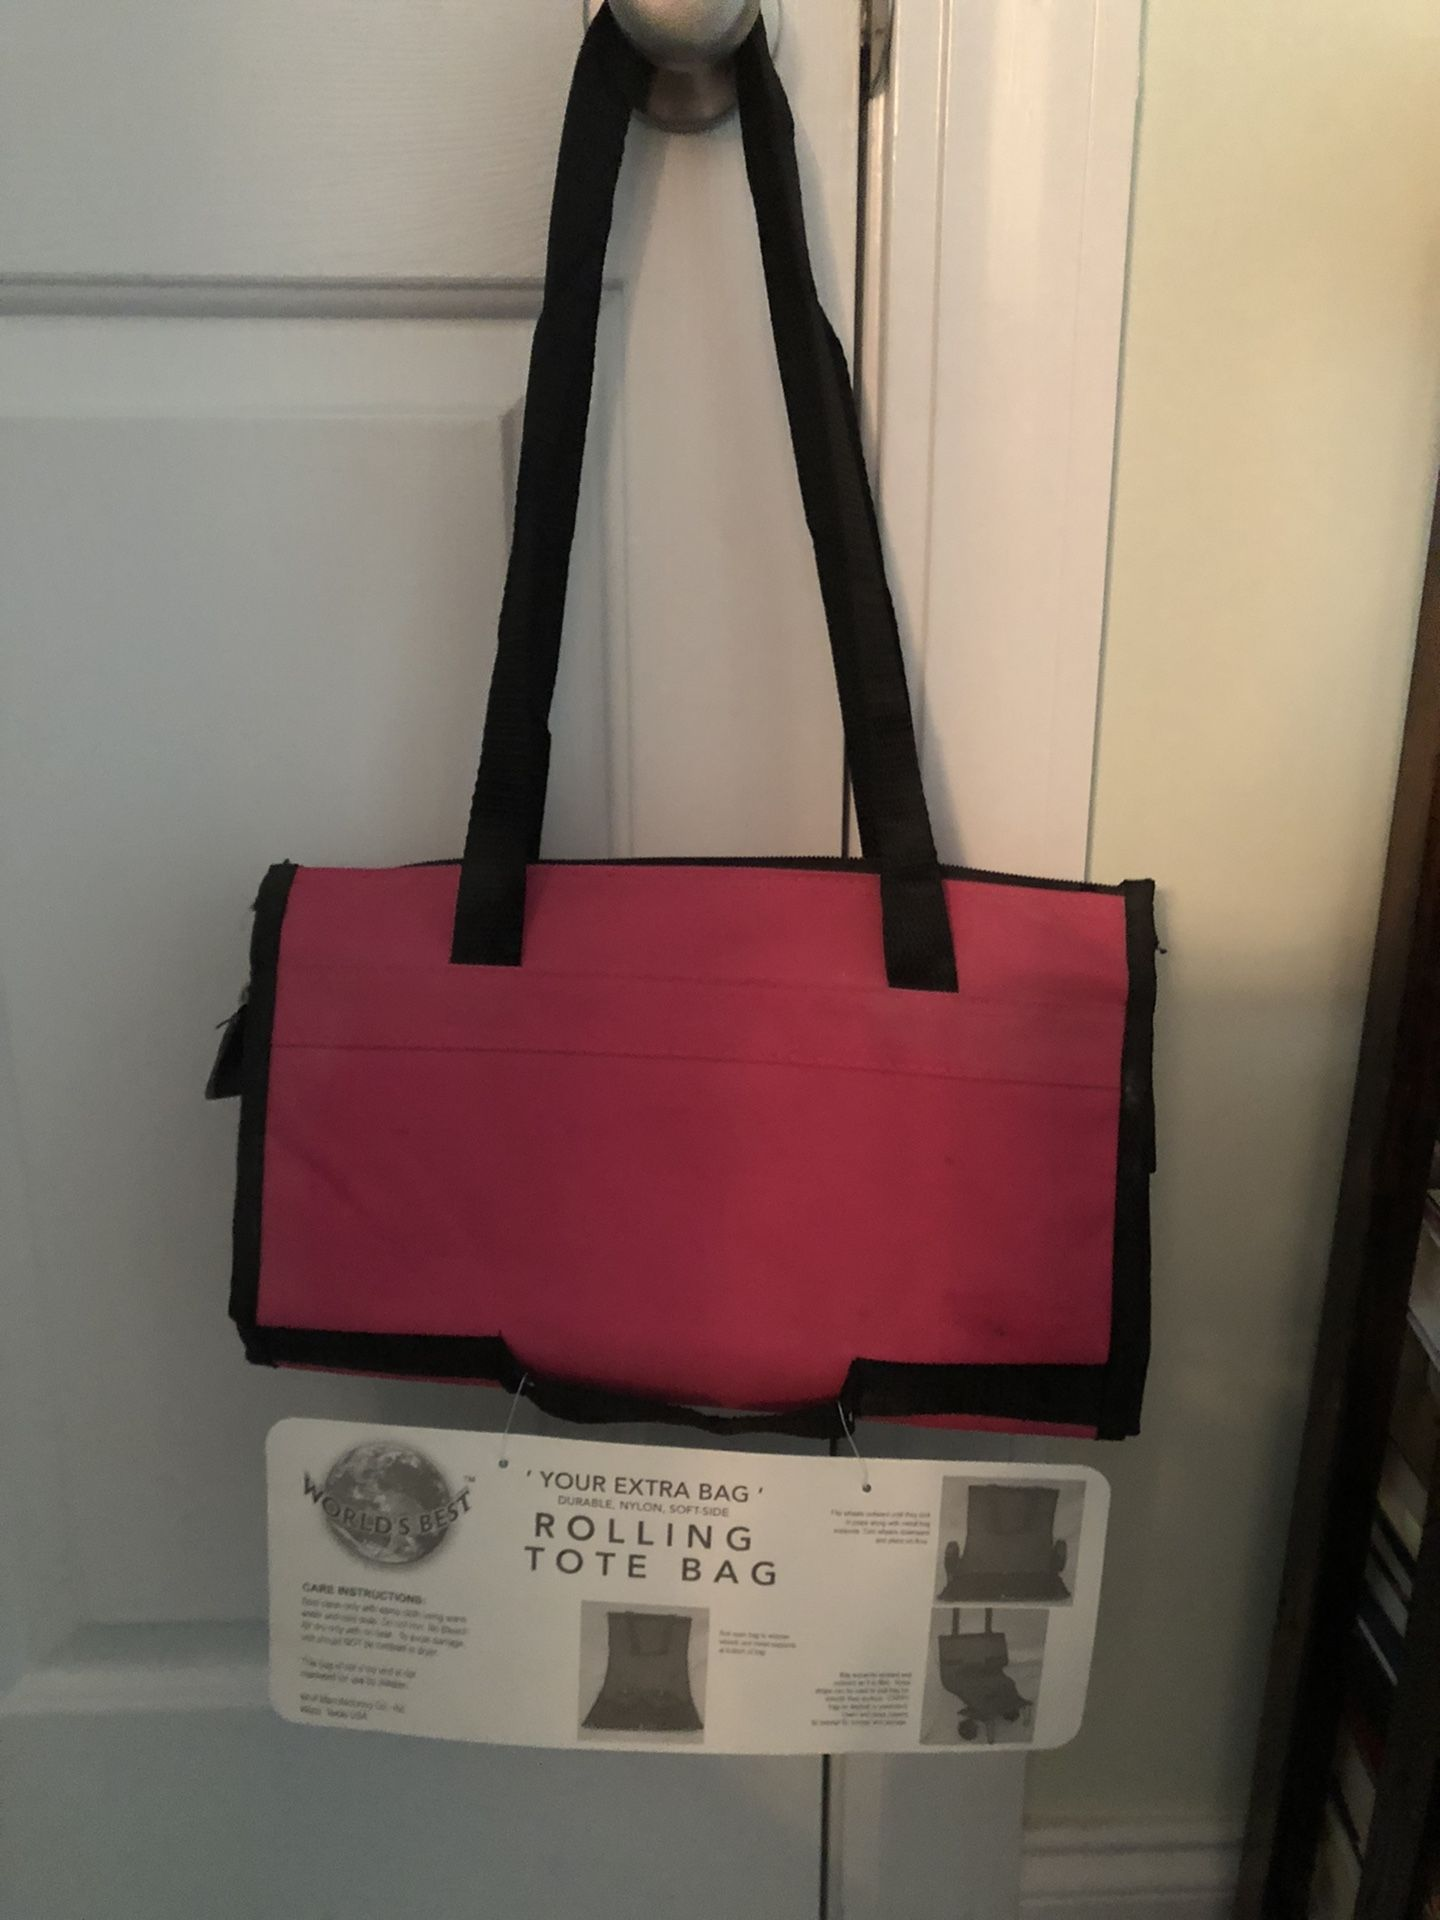 Tote Bag Rolling Folds Into Compact Space New Never Used